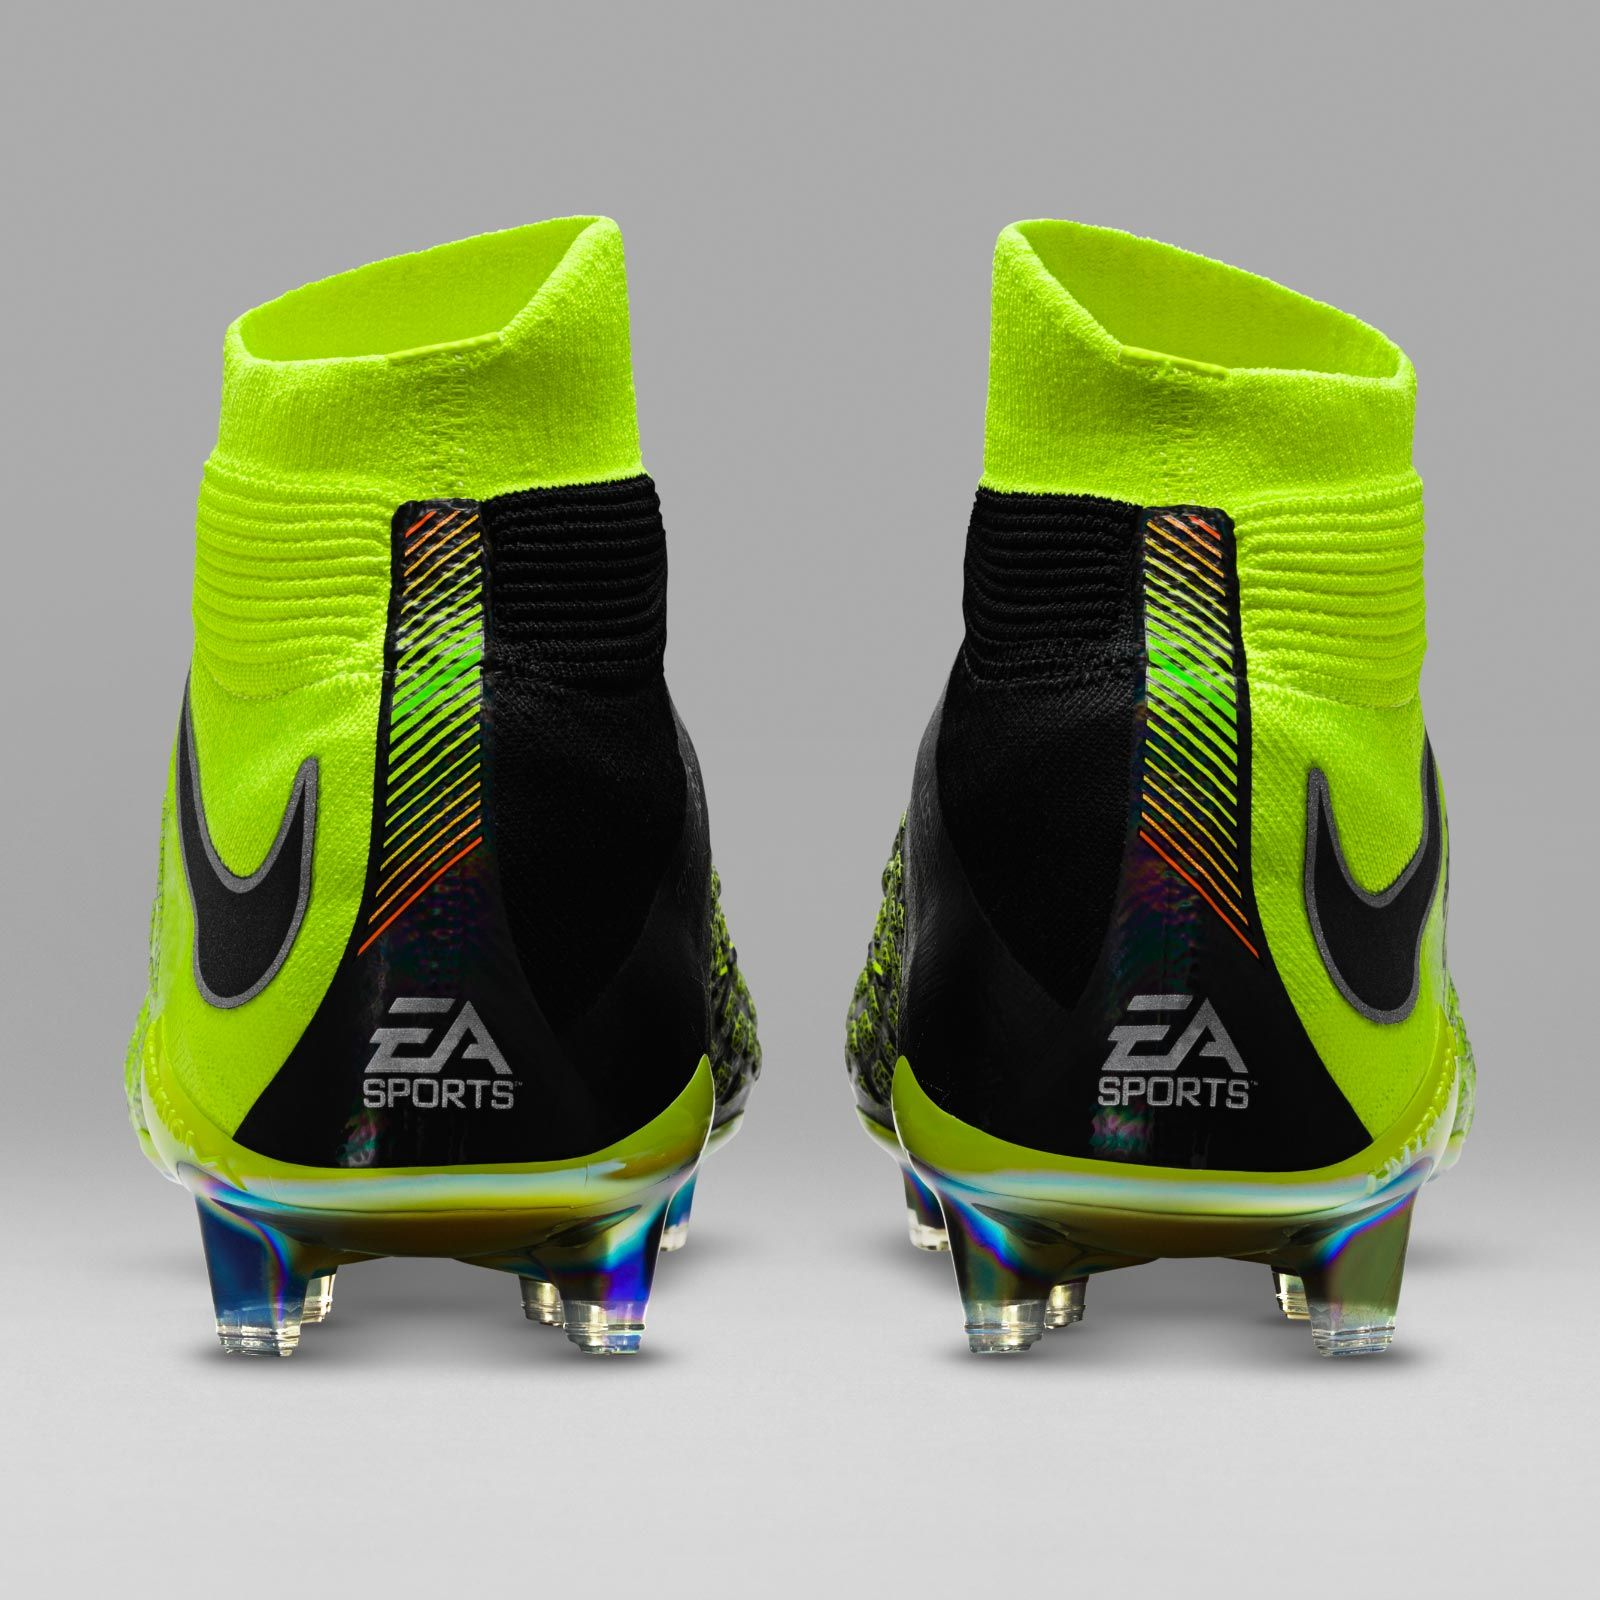 finest selection 88217 67b9a The limited-edition Nike Hypervenom Phantom III EA Sports boots introduce a  striking design, inspired by Real Player Motion technology.